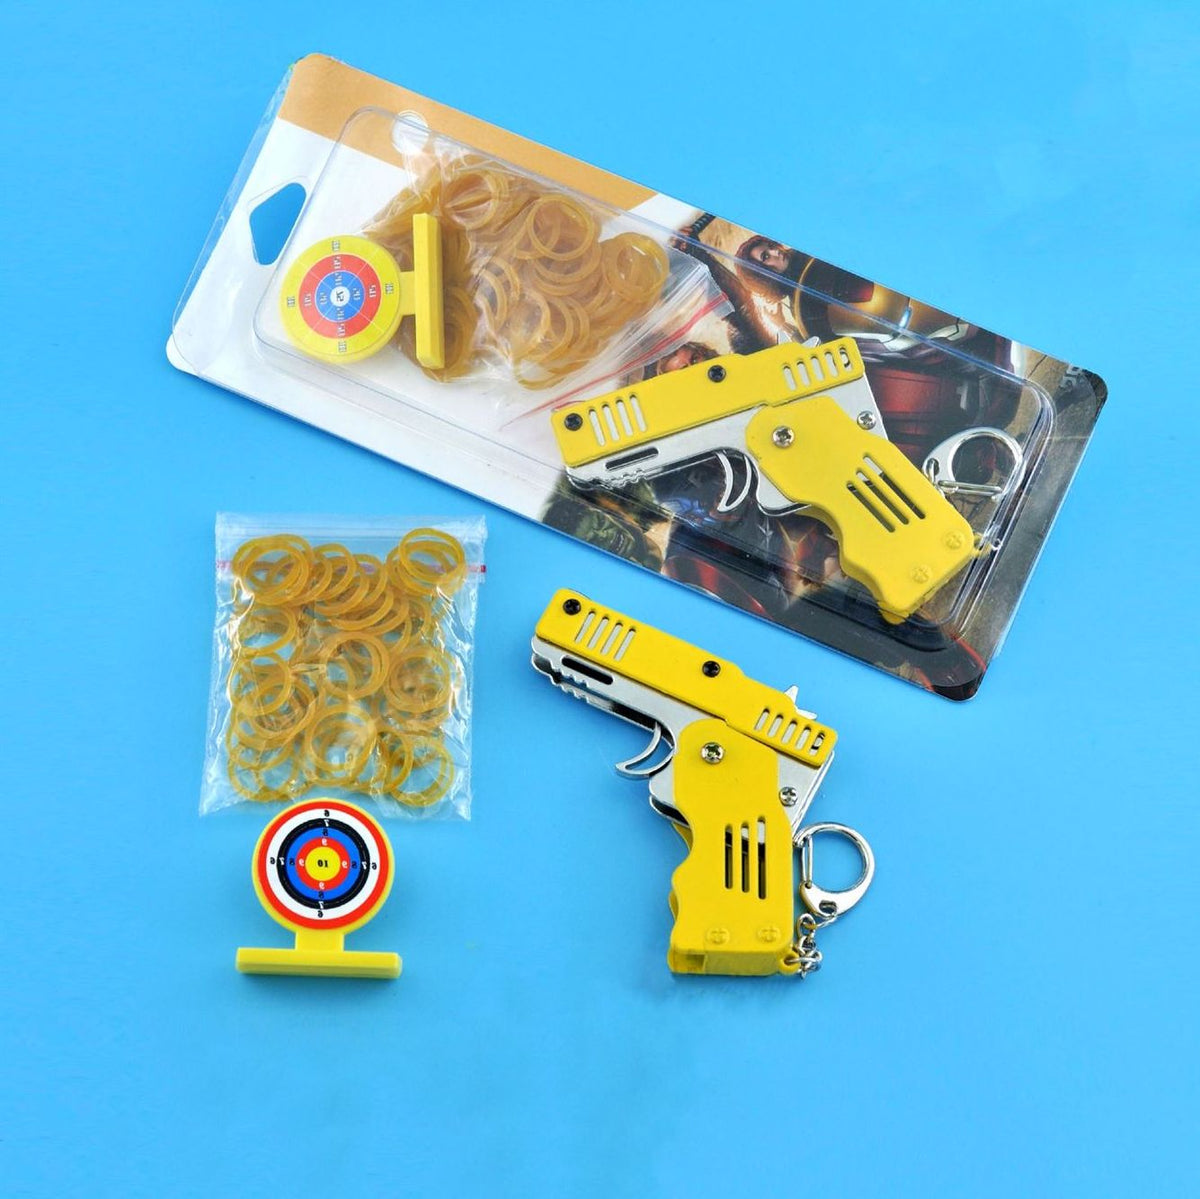 All Metal Mini Folding Rubber Band Gun Toy Keychain ✨ HOT SALE! ENDING TODAY! ✨